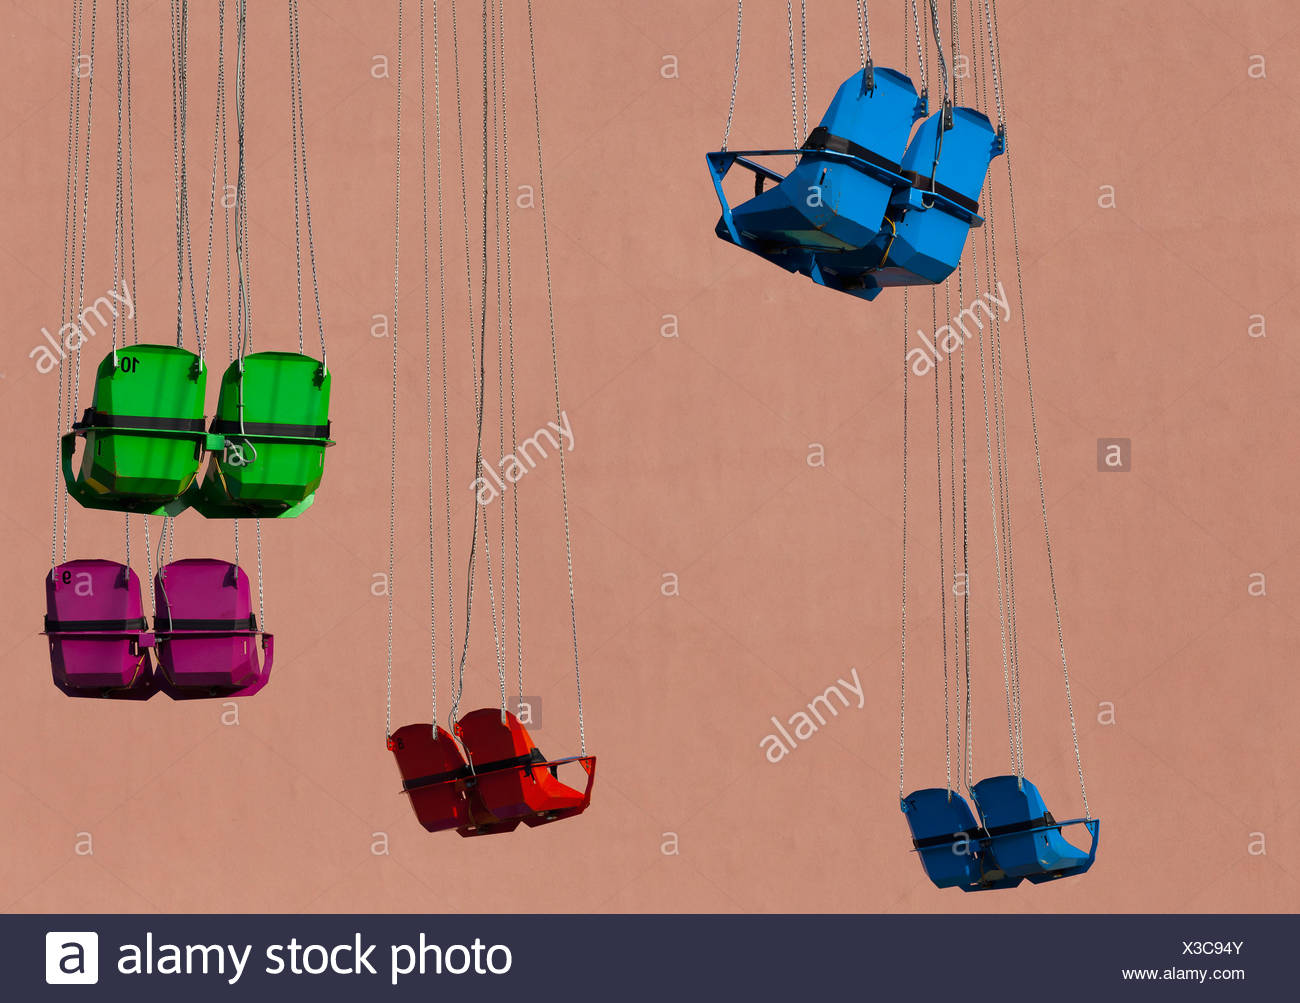 Empty seats of a Chairoplane or swing carousel in front of a house facade, Berlin, Germany, Europe - Stock Image